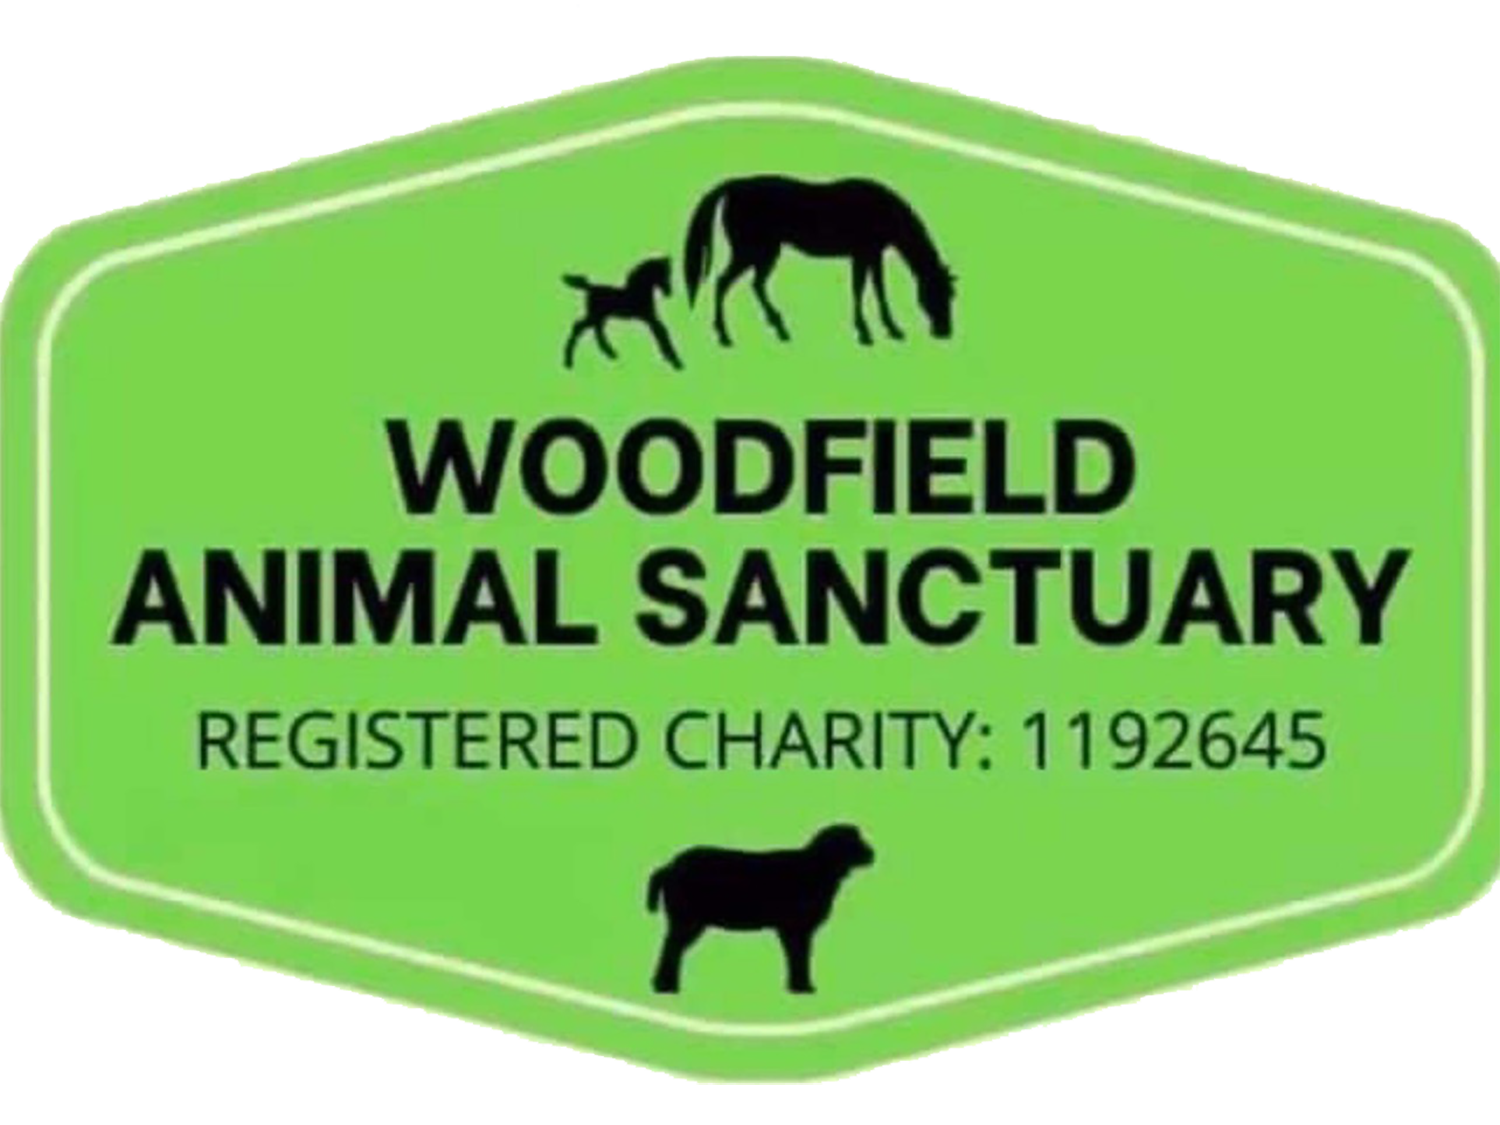 Woodfield Animal Sanctuary